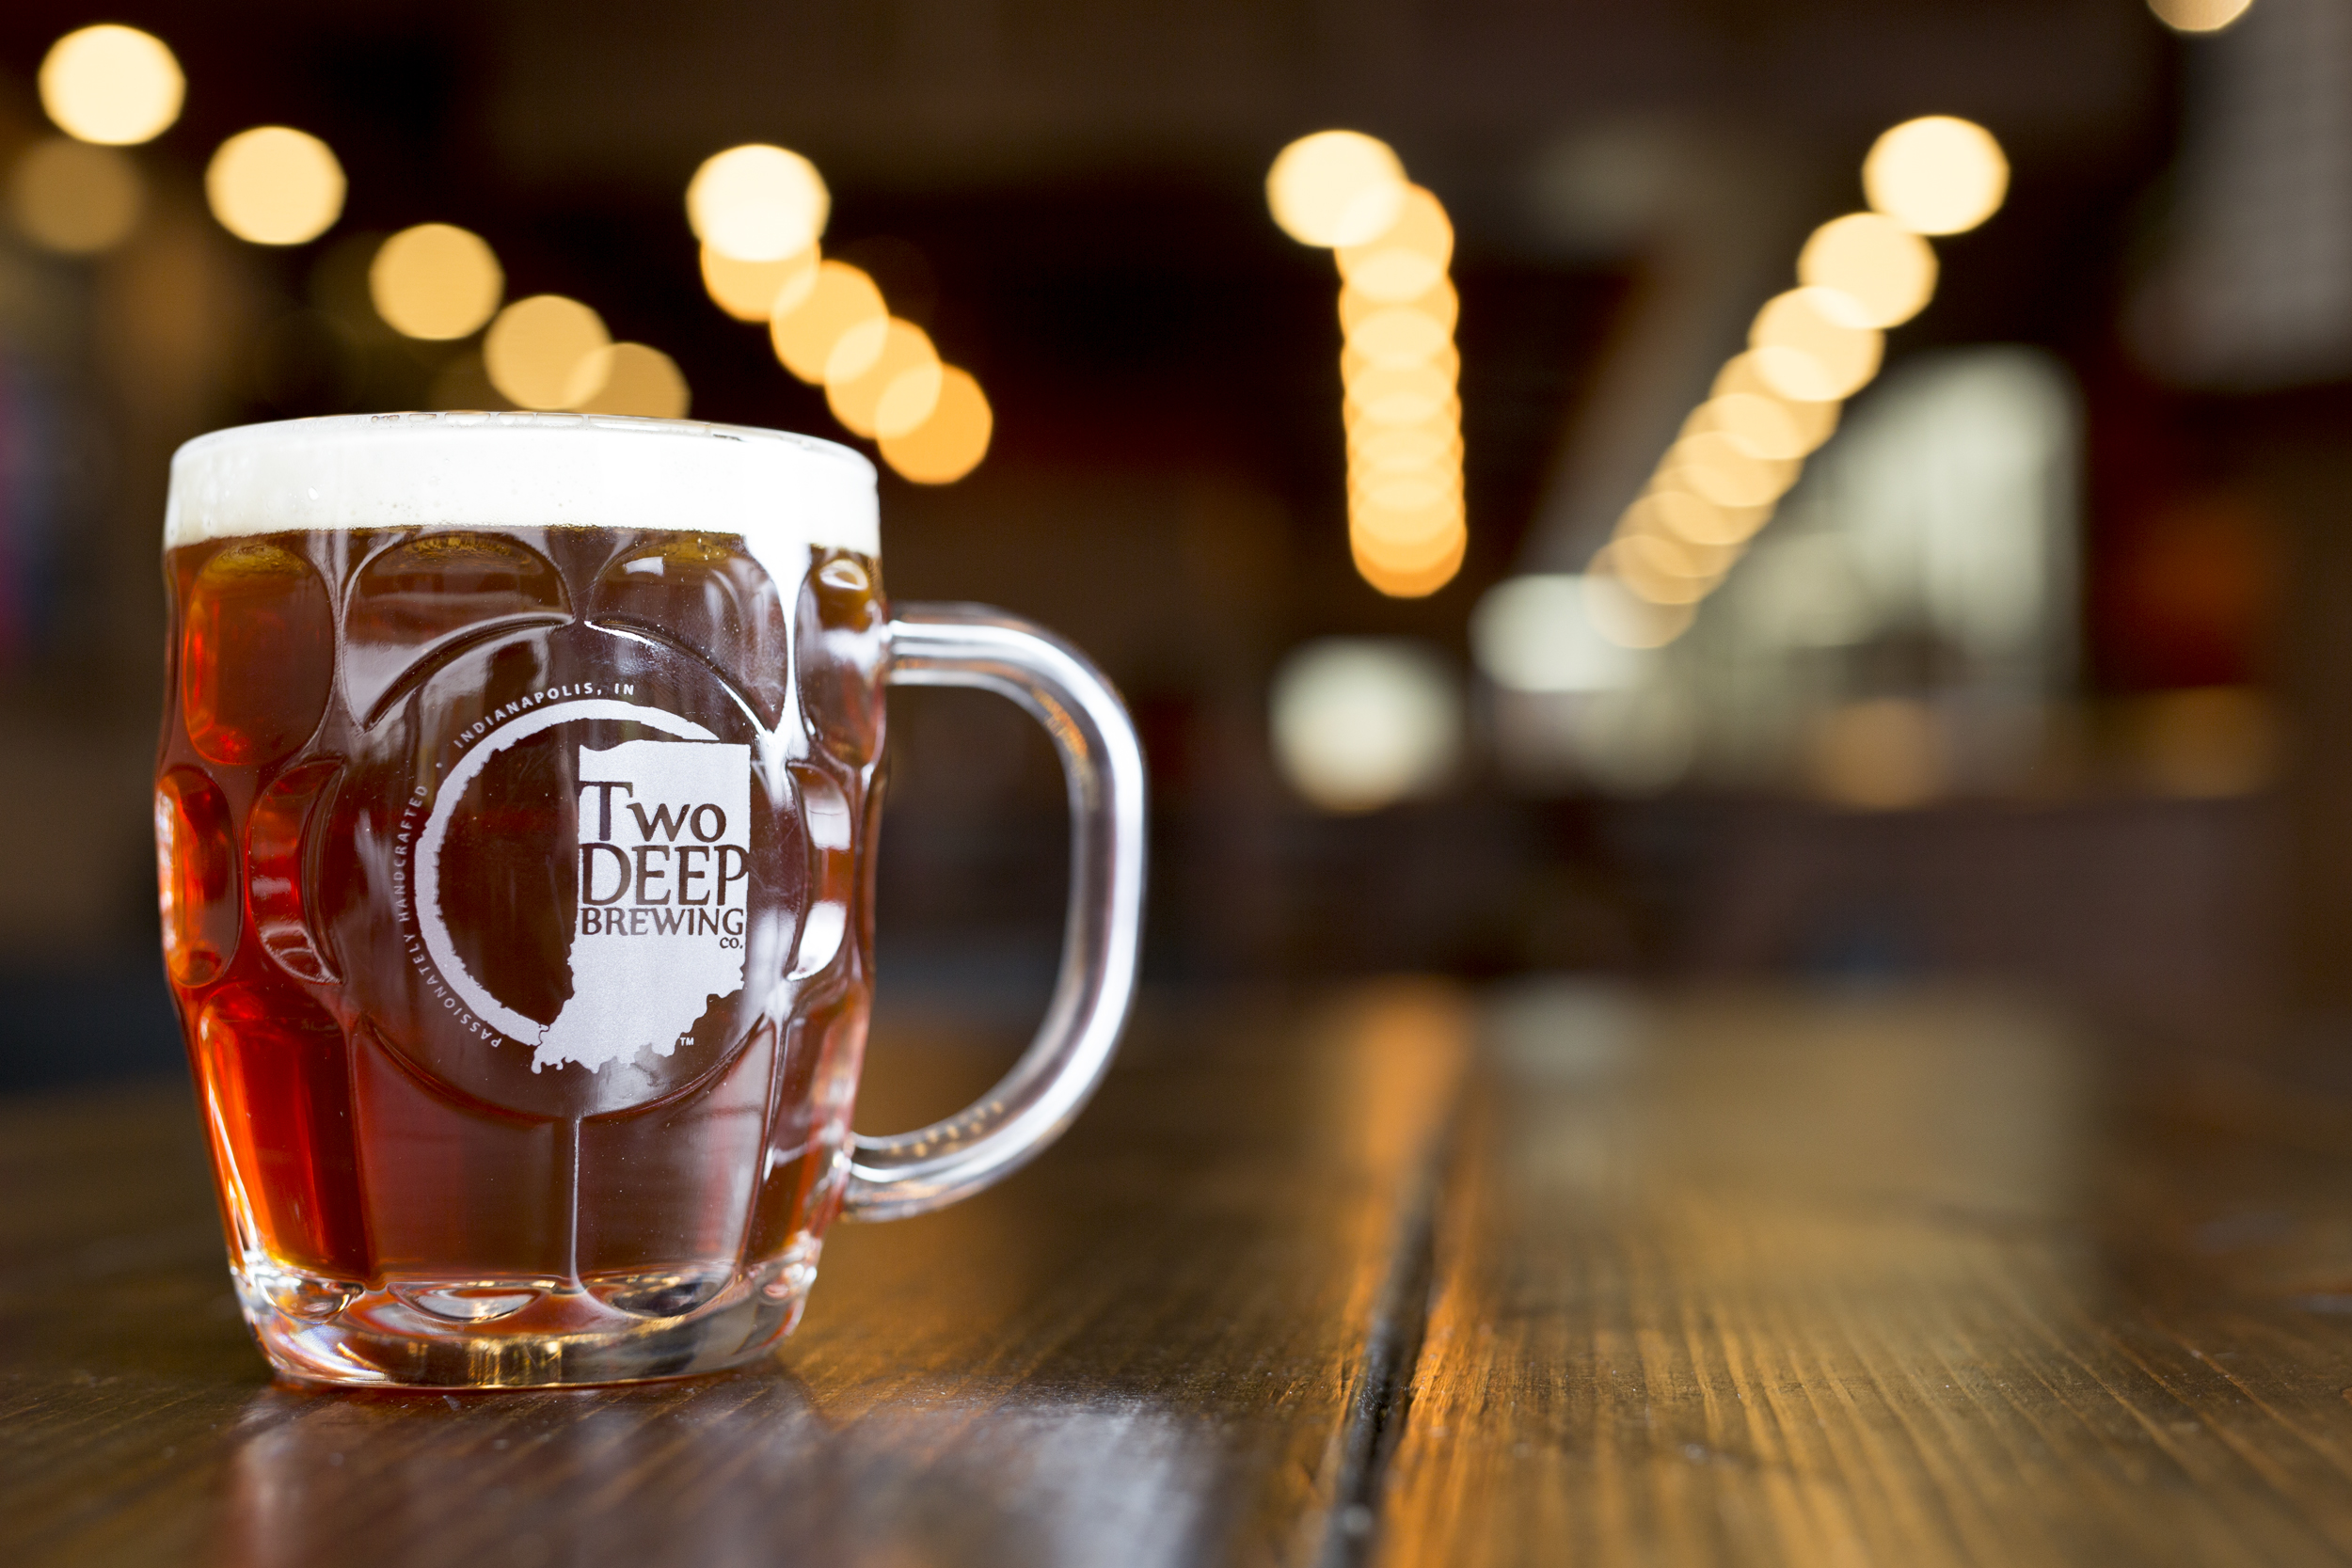 TDBC MUG CLUB  Sometimes drinking from a 20-oz. mug really makes a craft beer drinker feel special. Click here to learn about our Mug Club program and check in on our latest Mug Club news!